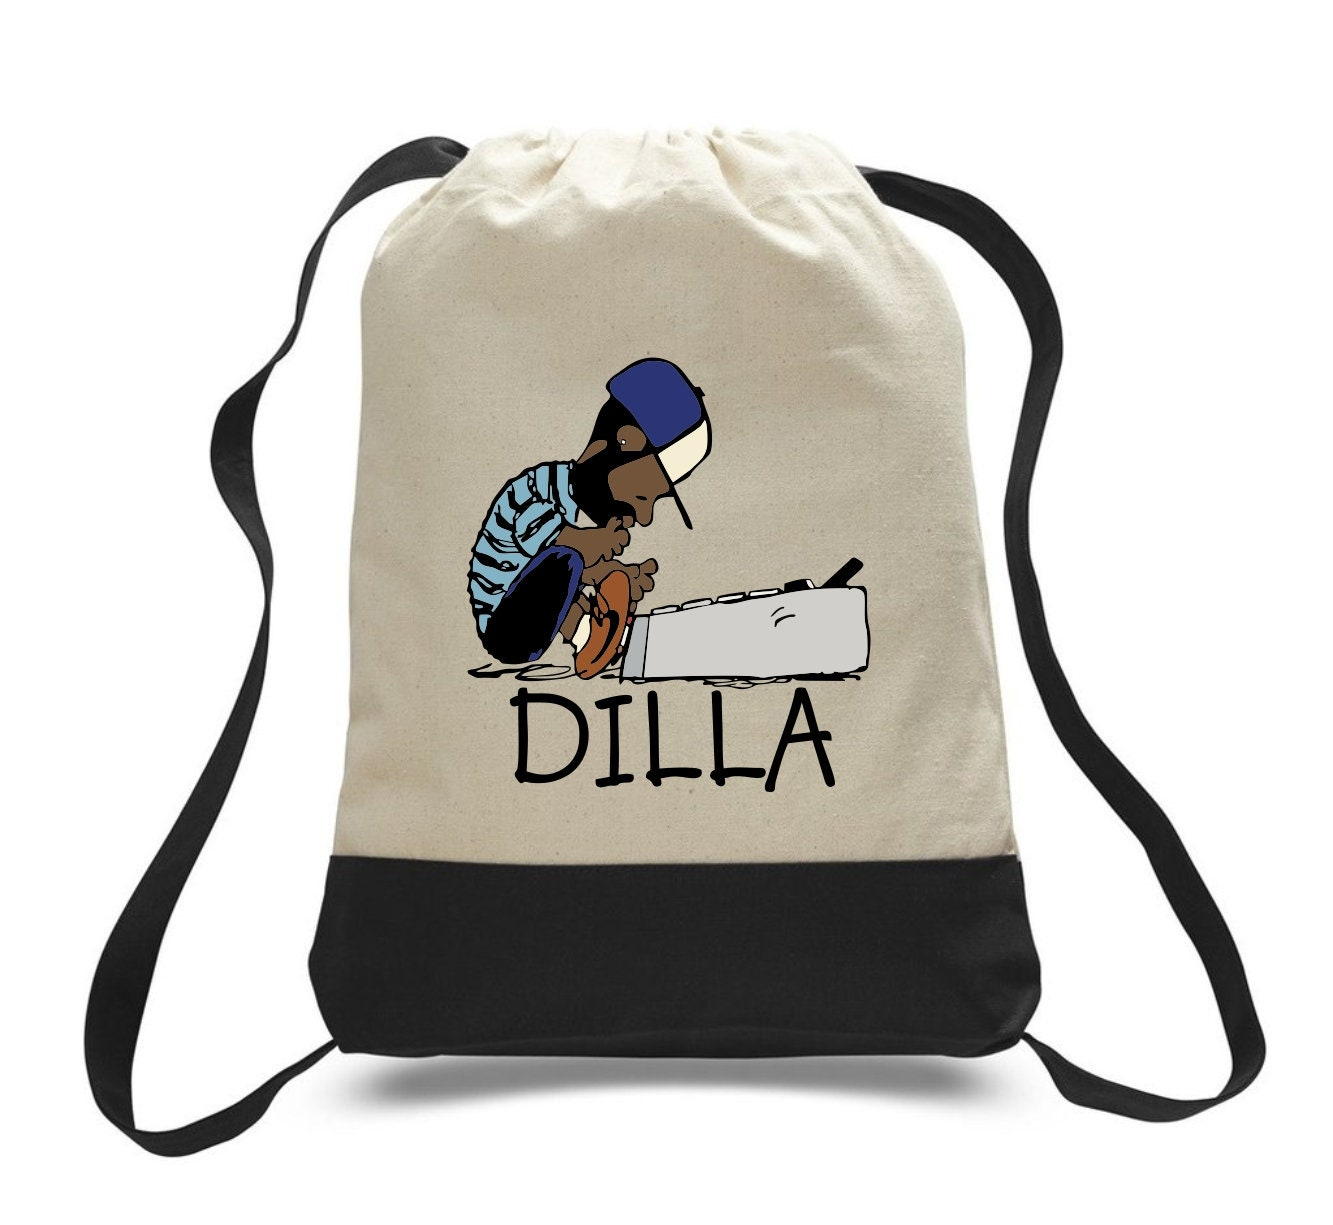 a58a641eee5f J Dilla Custom Peanuts Style Canvas tote Bag Backpack Heavy Duty Super  Producer